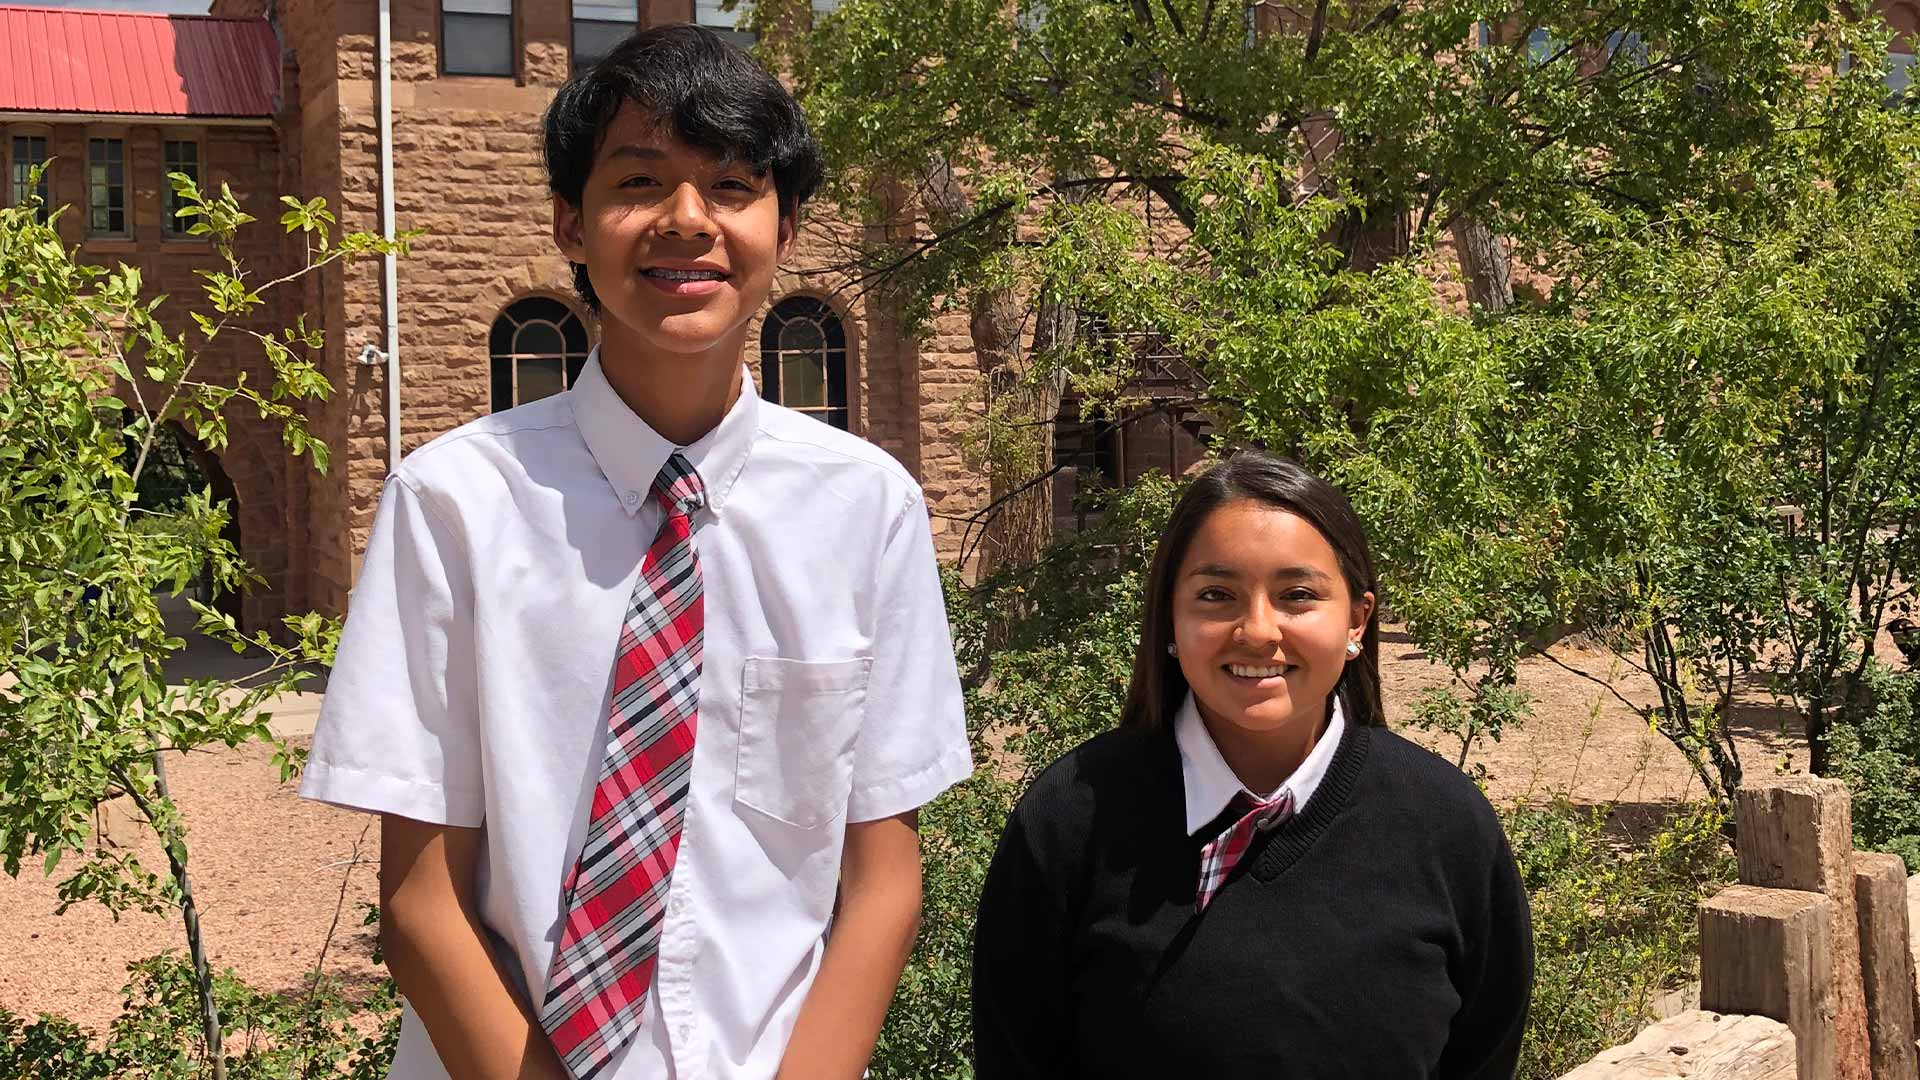 SMIS STUDENT LEADERSHIP PARTICIPATES IN NEW AIA AMBASSADORS PROGRAM